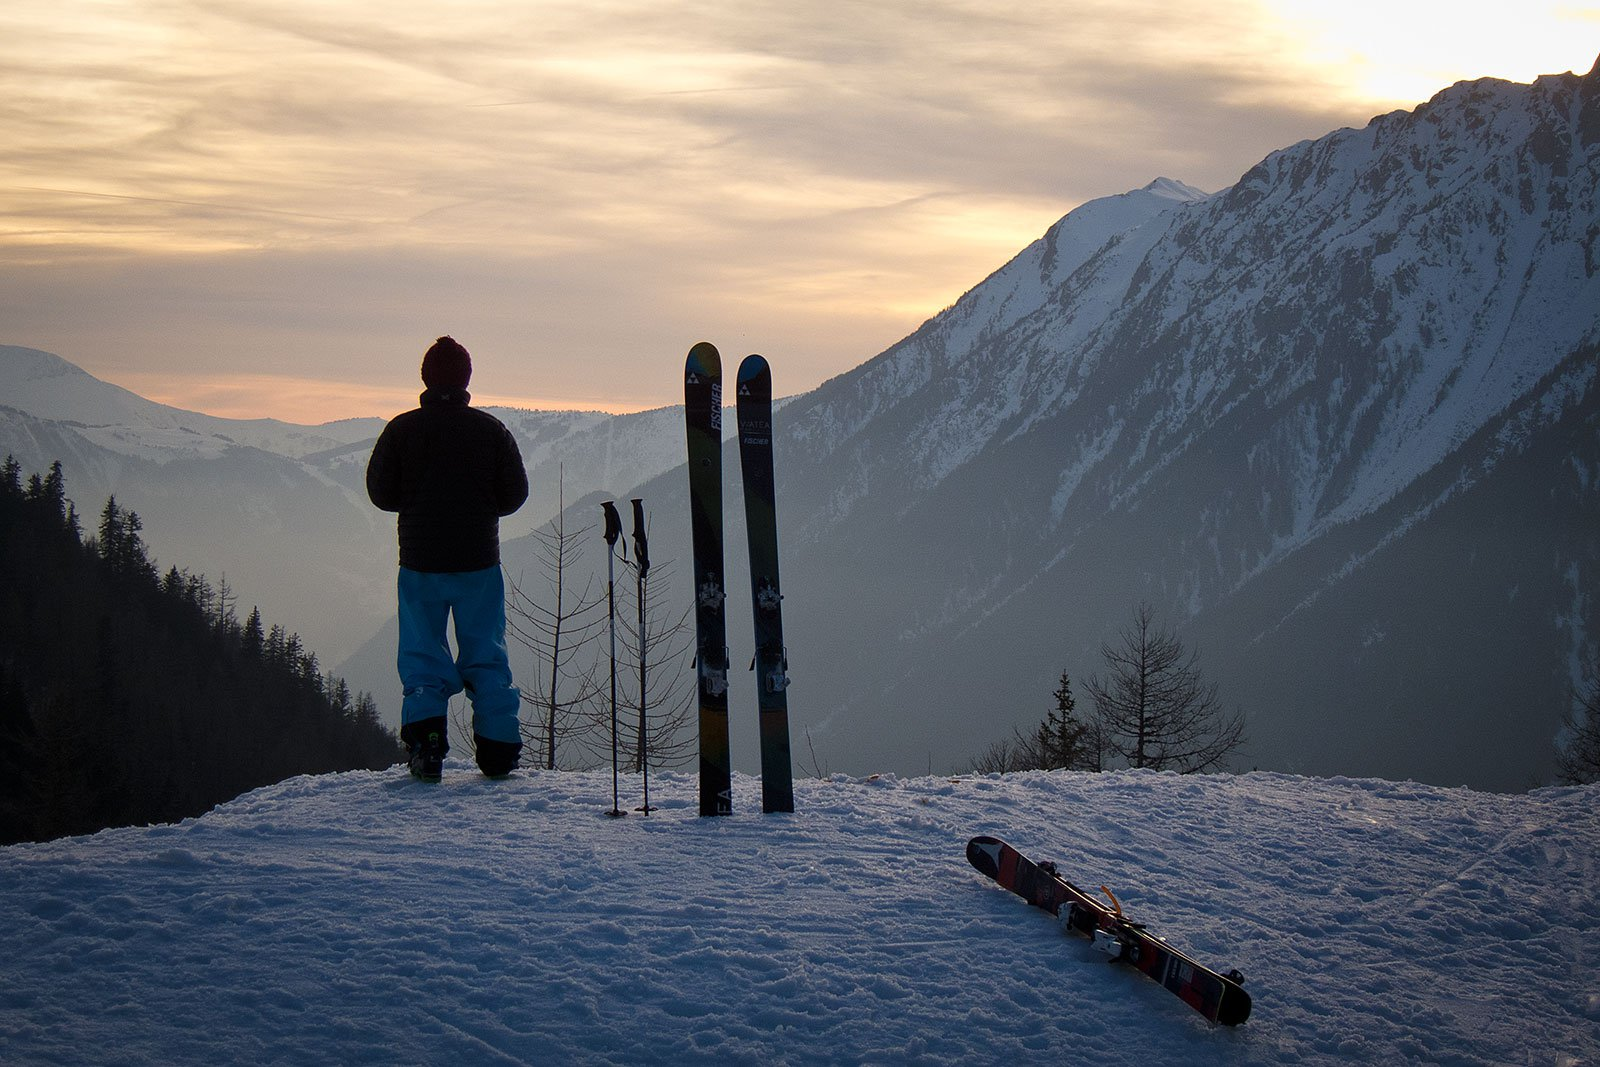 Sunset over Chamonix